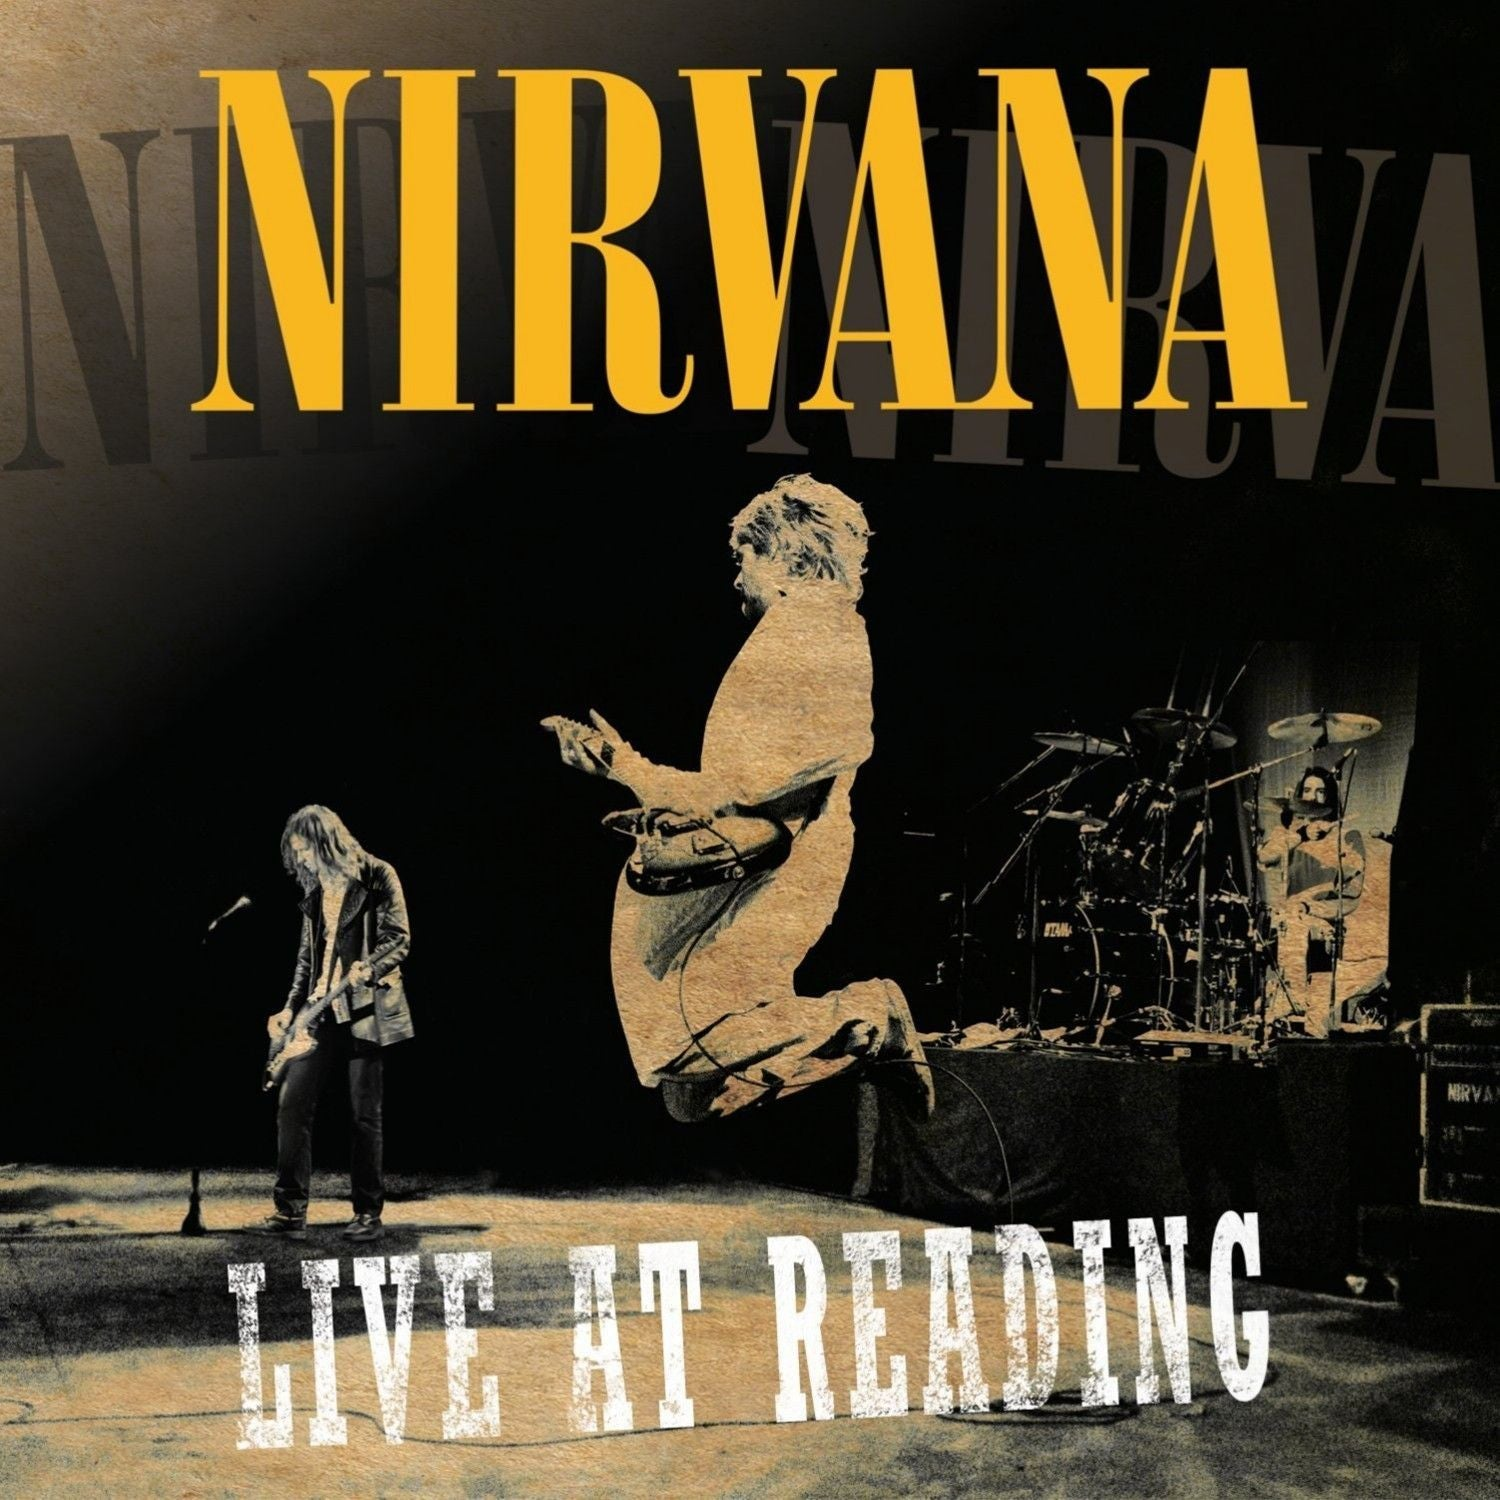 Nirvana - Live At Reading (Vinyl 2LP Record)